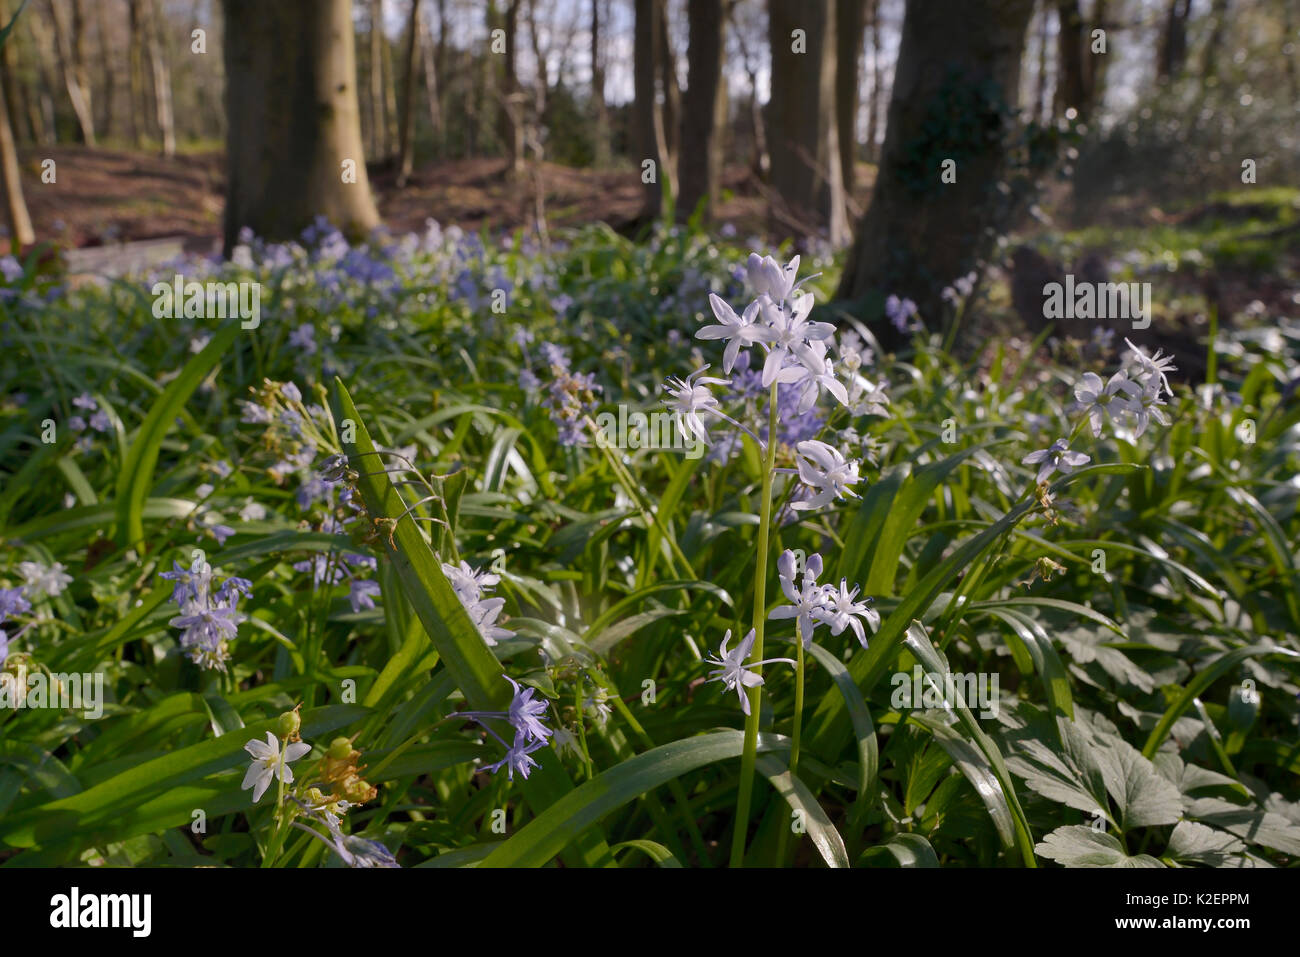 Carpet of Turkish Squill (Scilla bithynica) an invasive species from eastern Europe and Turkey naturalised in the Stock Photo